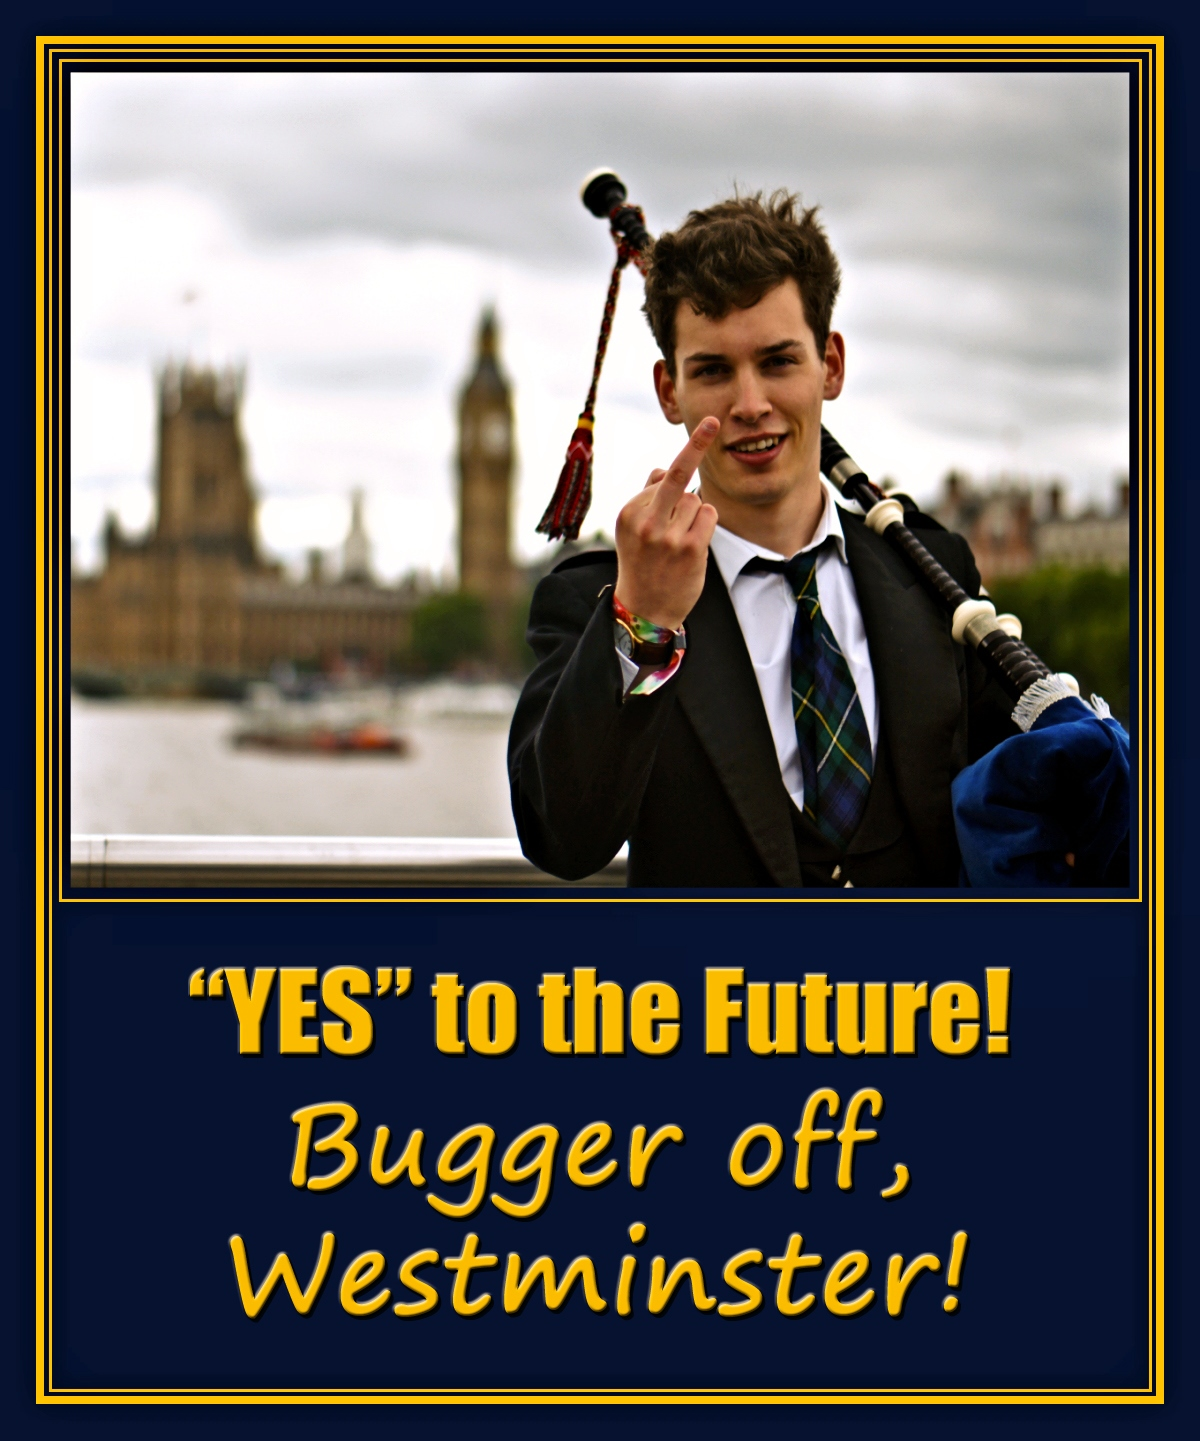 00 vote yes for the future. Bugger off Westminster! 13.09.14